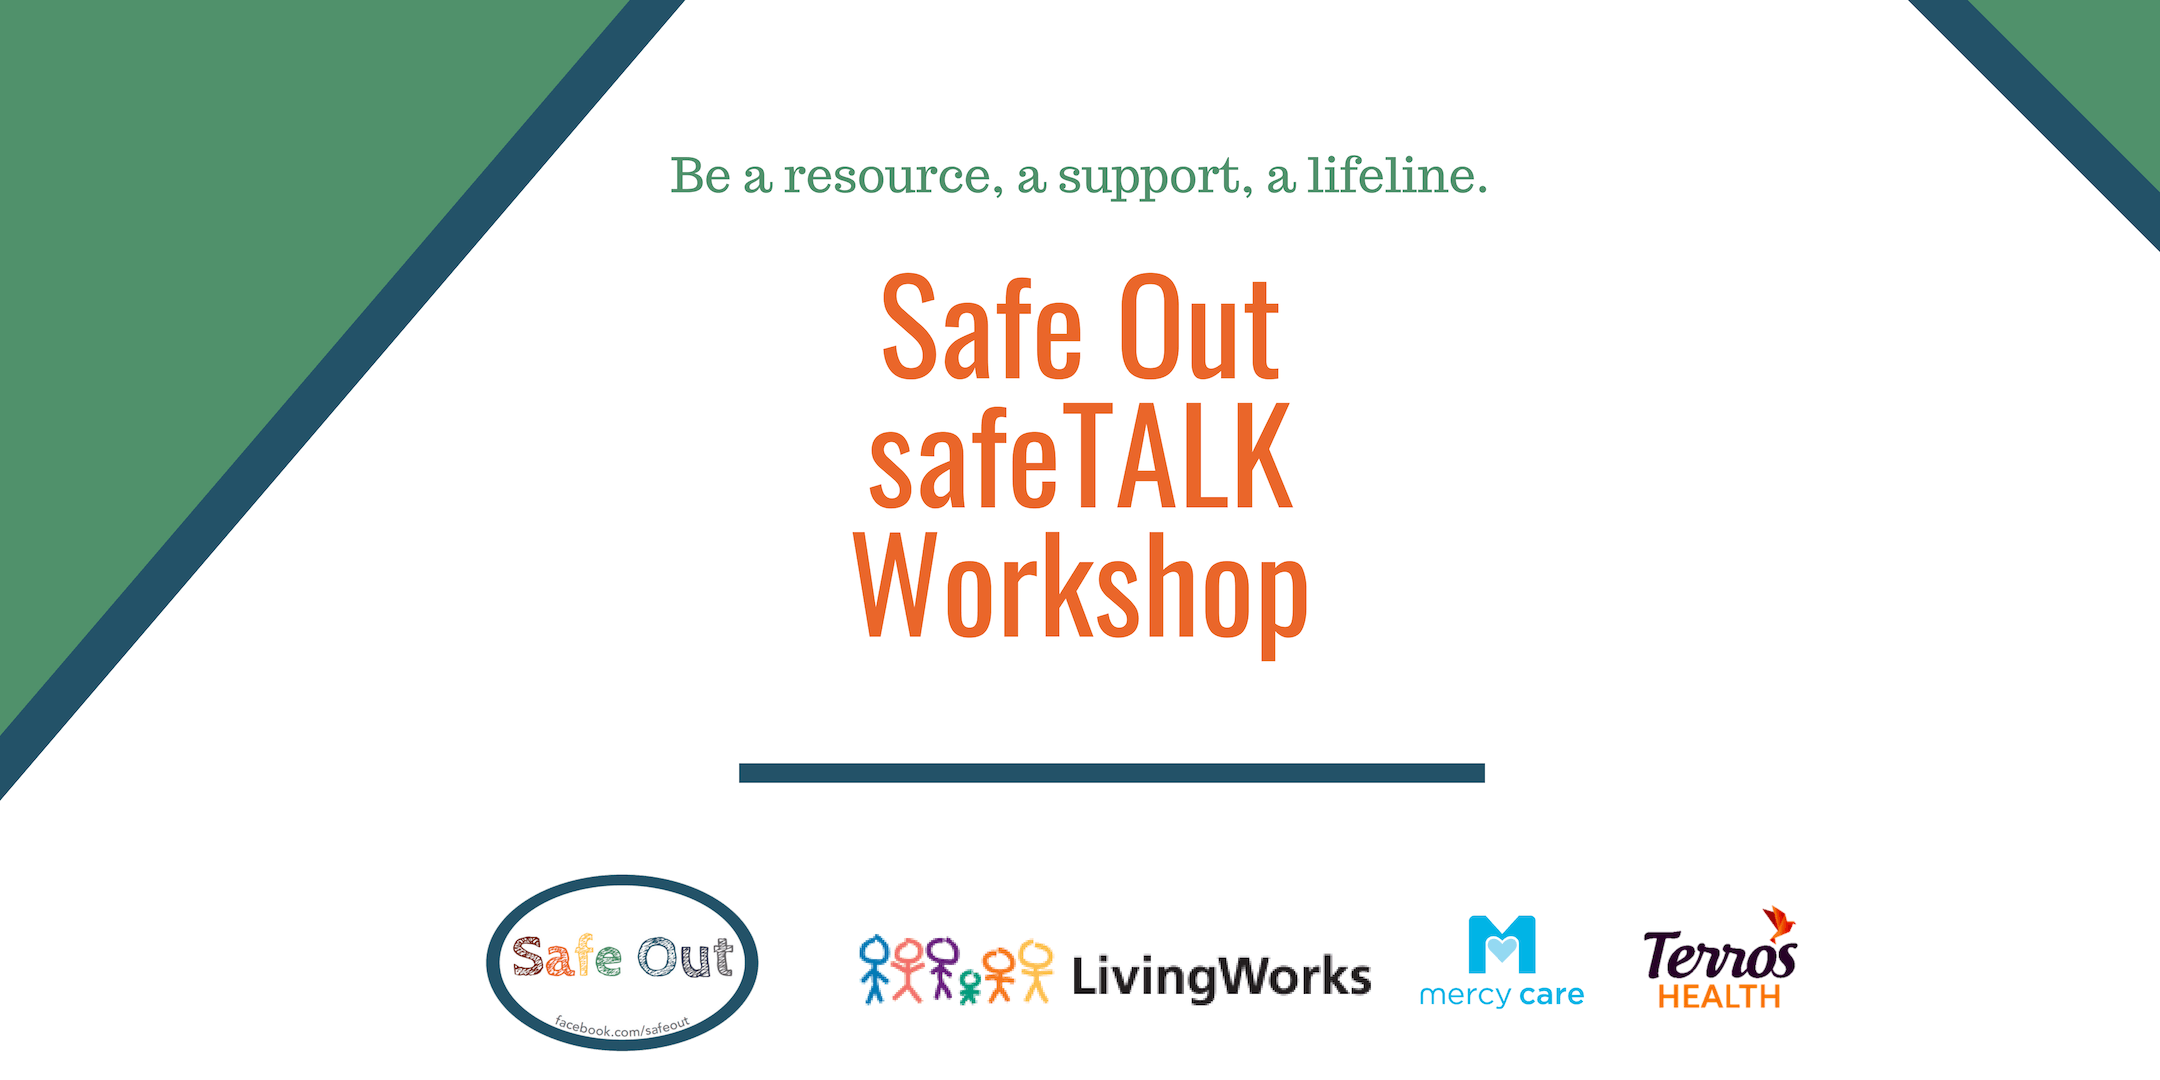 safeTALK with Safe Out: Keeping our LGBTQ Communities Safe